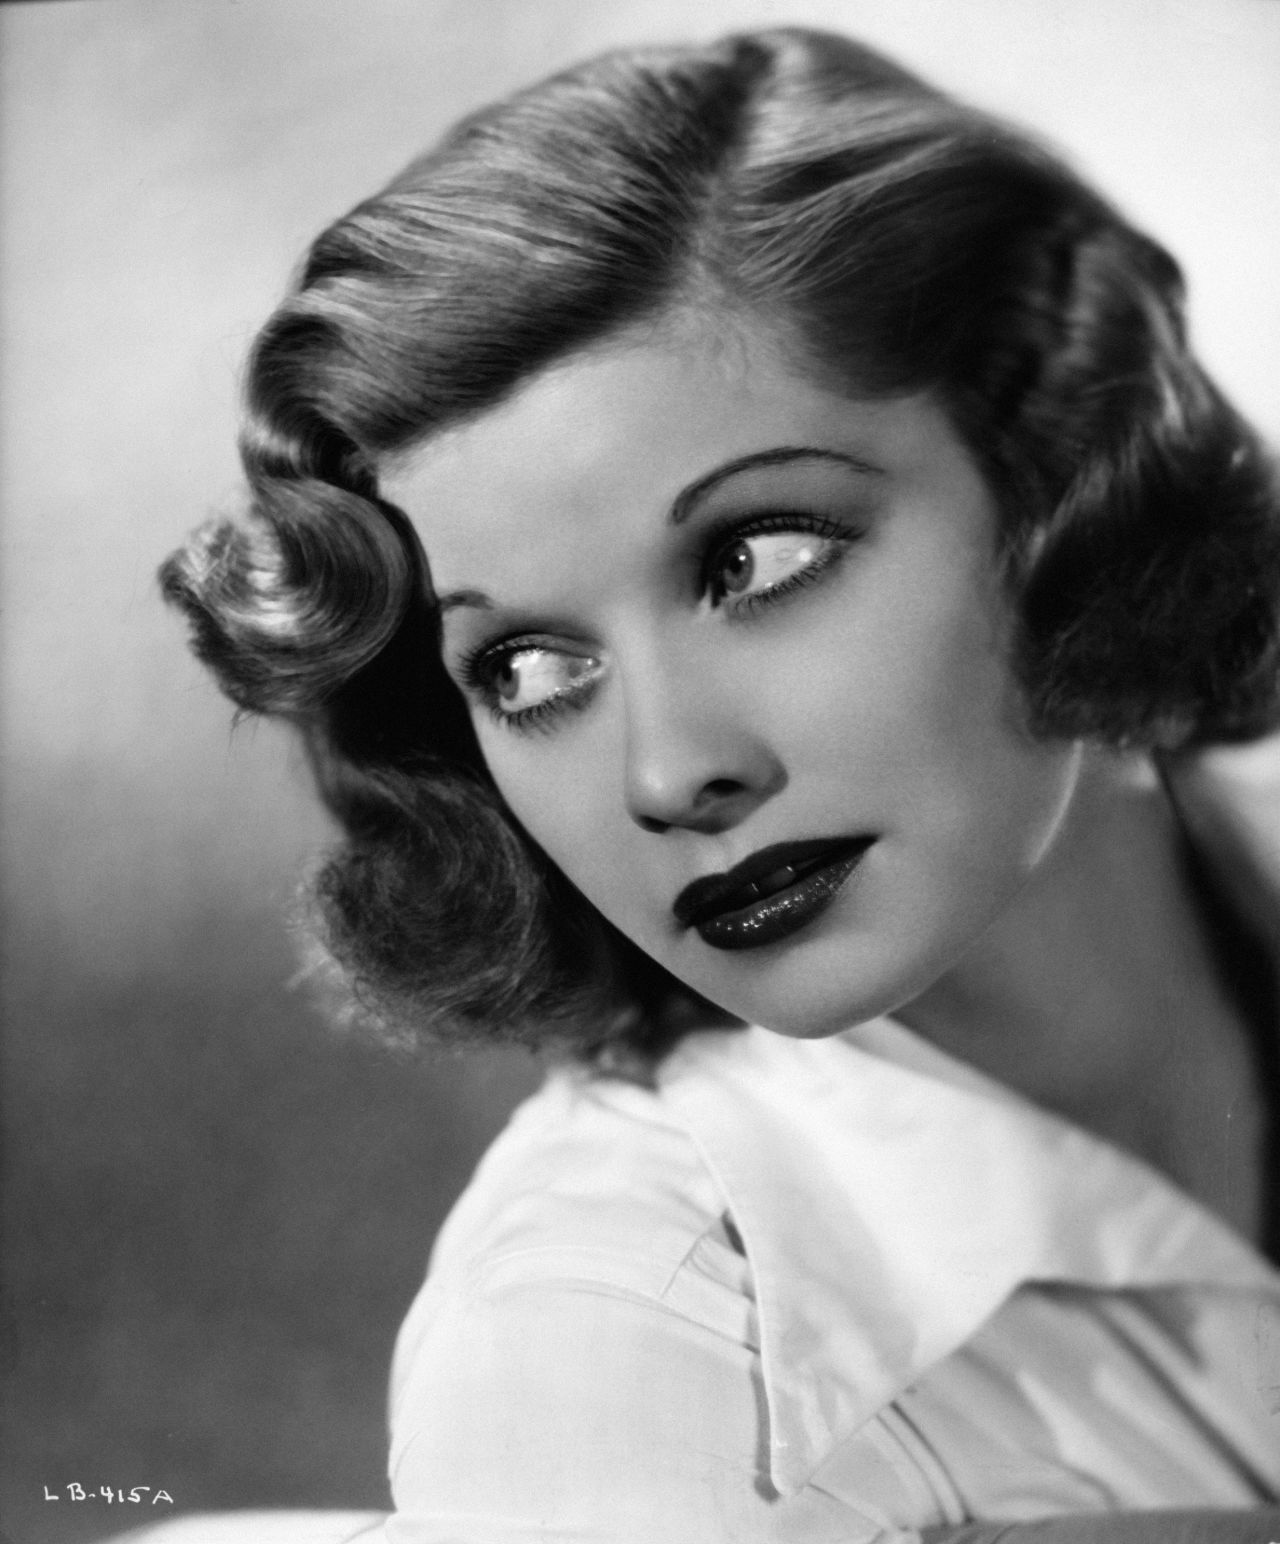 Can Somebody a essay for me on Lucille Ball?